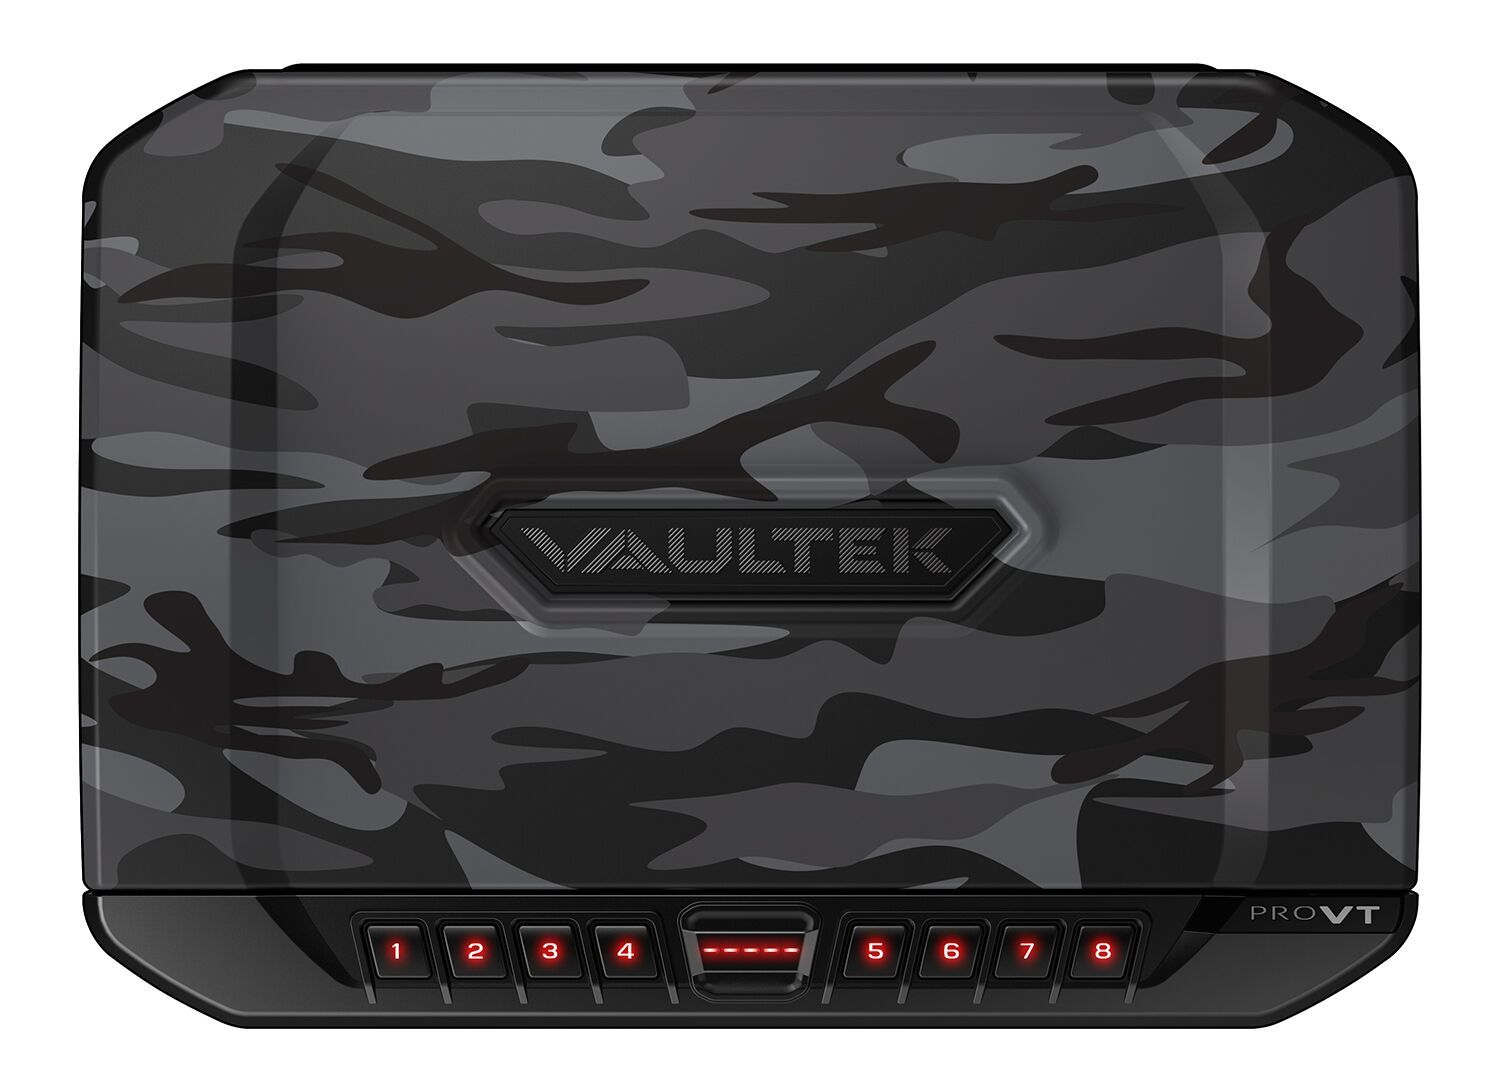 Handgun And Pistol Safes - Vaultek Pro VT Full-Size Rugged Bluetooth Smart Safe